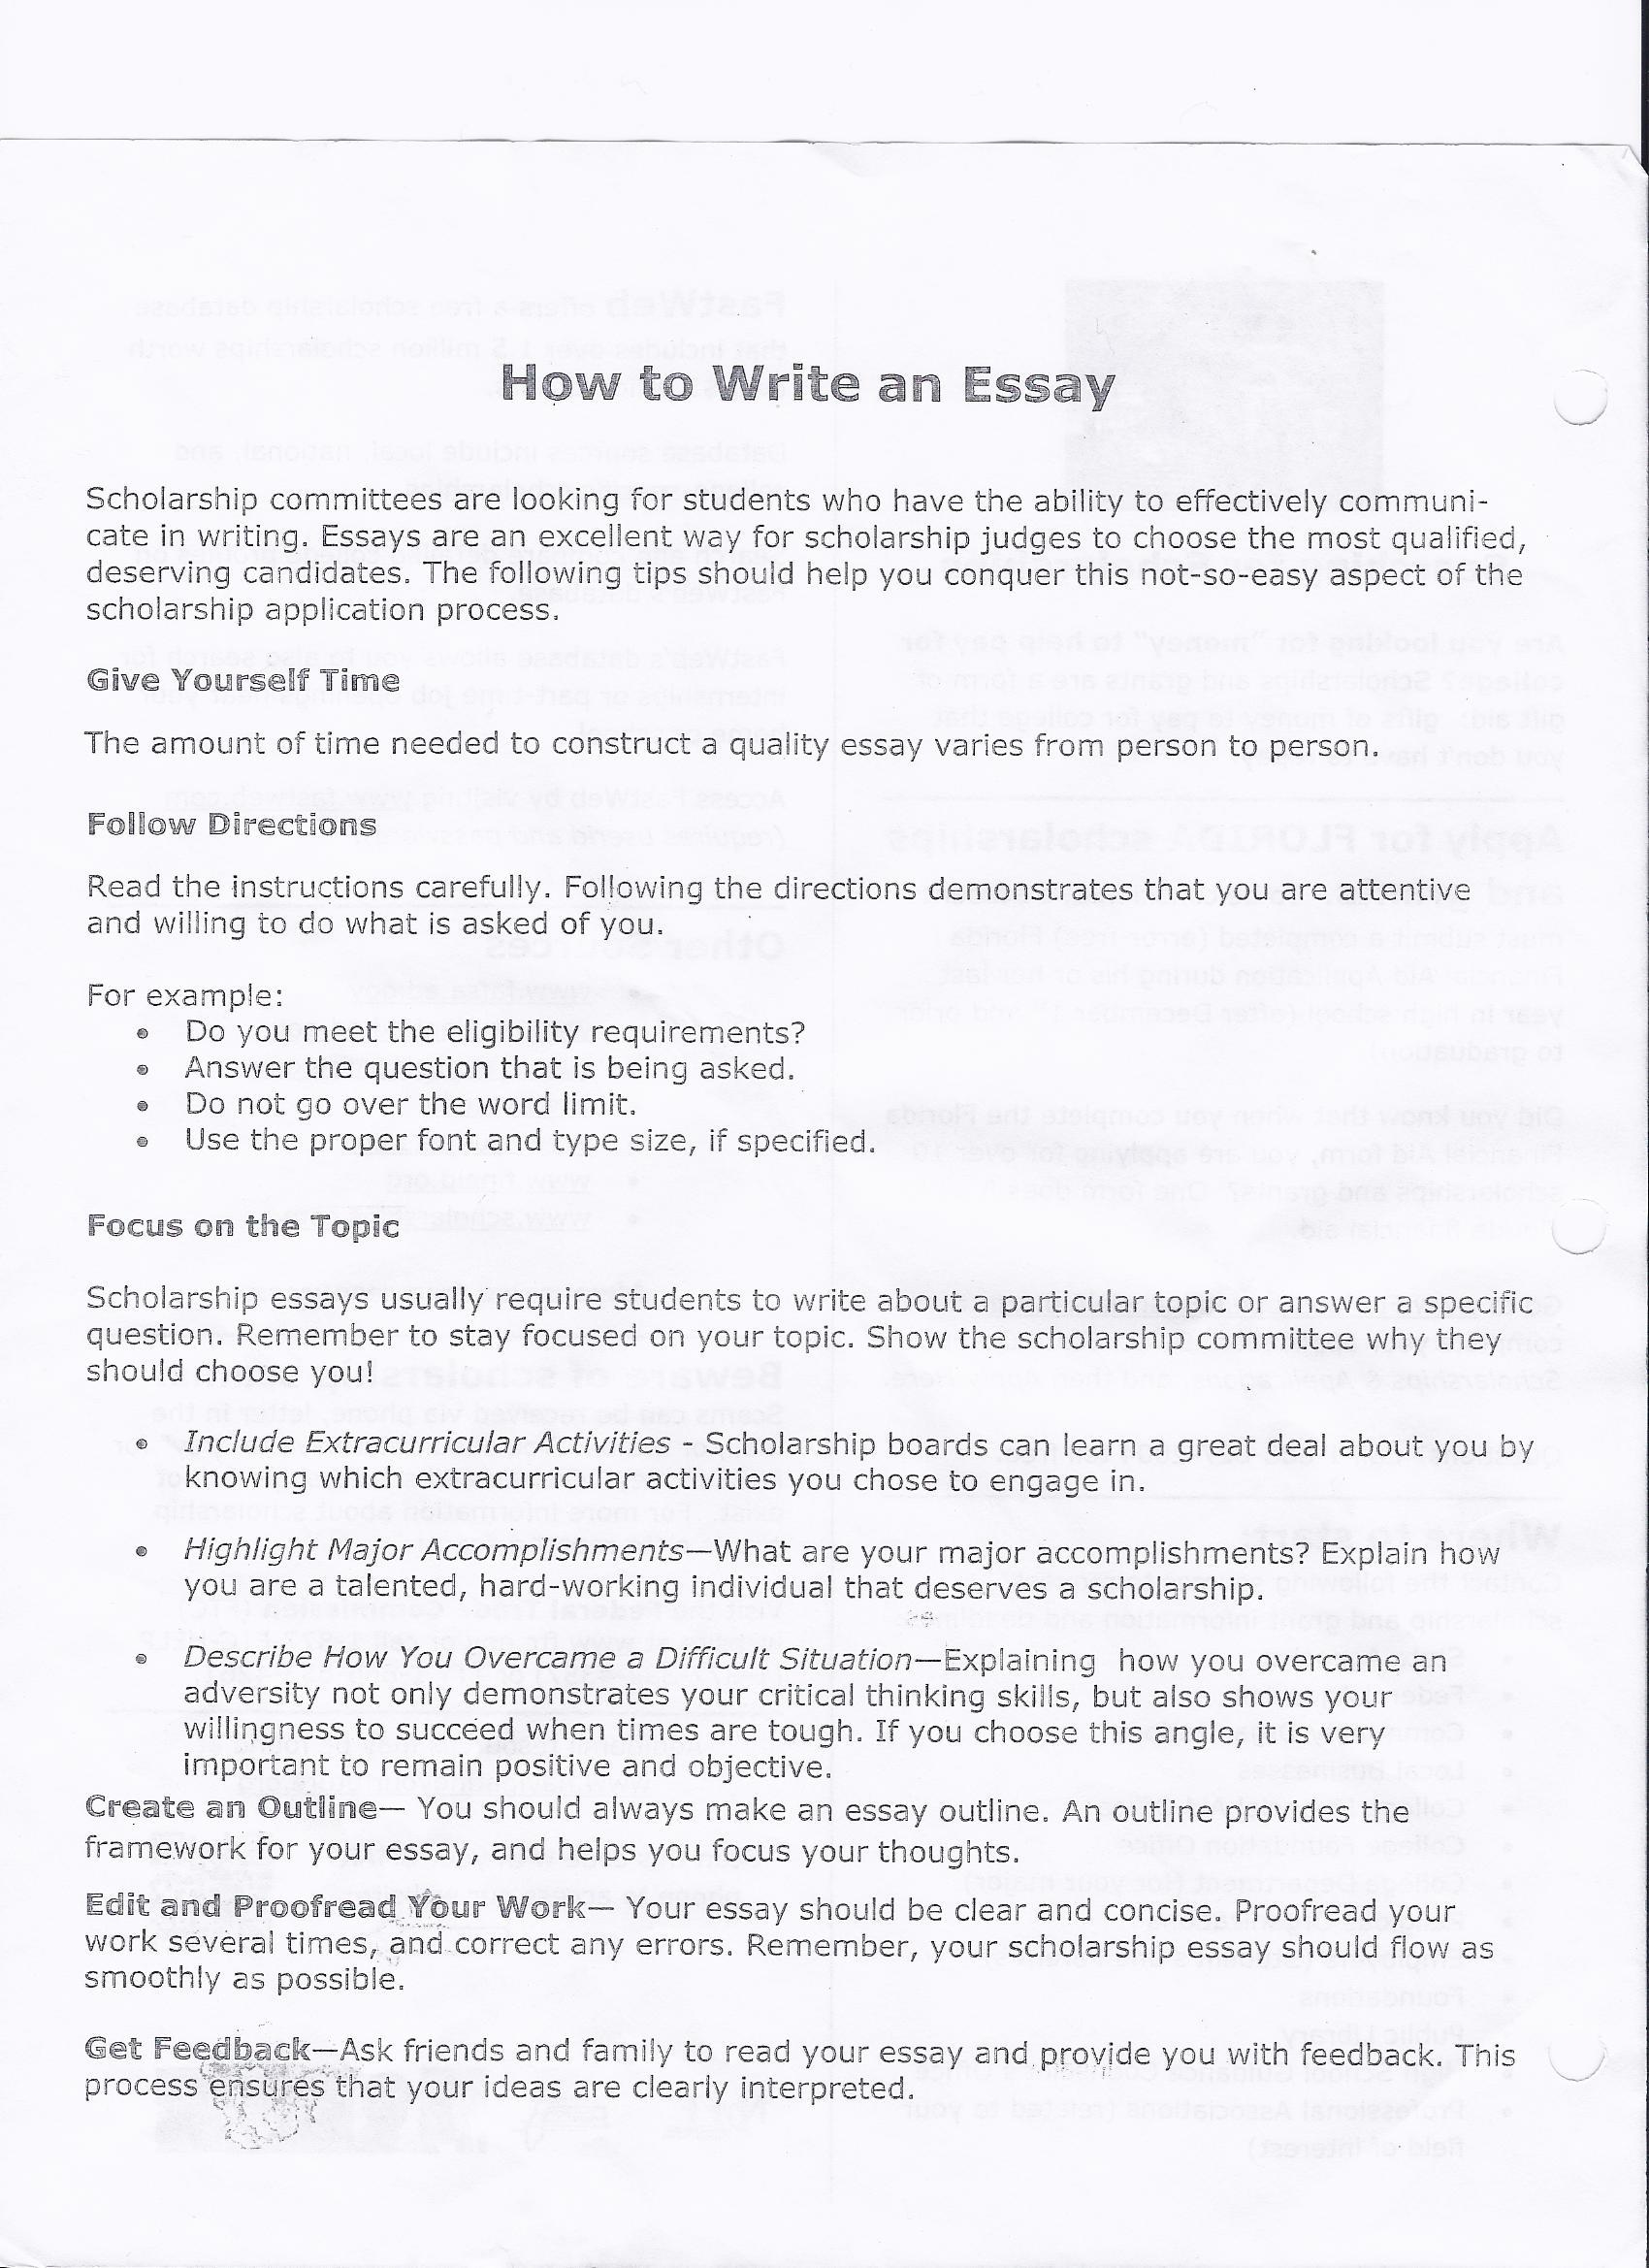 Example Argumentative Essay With Citations